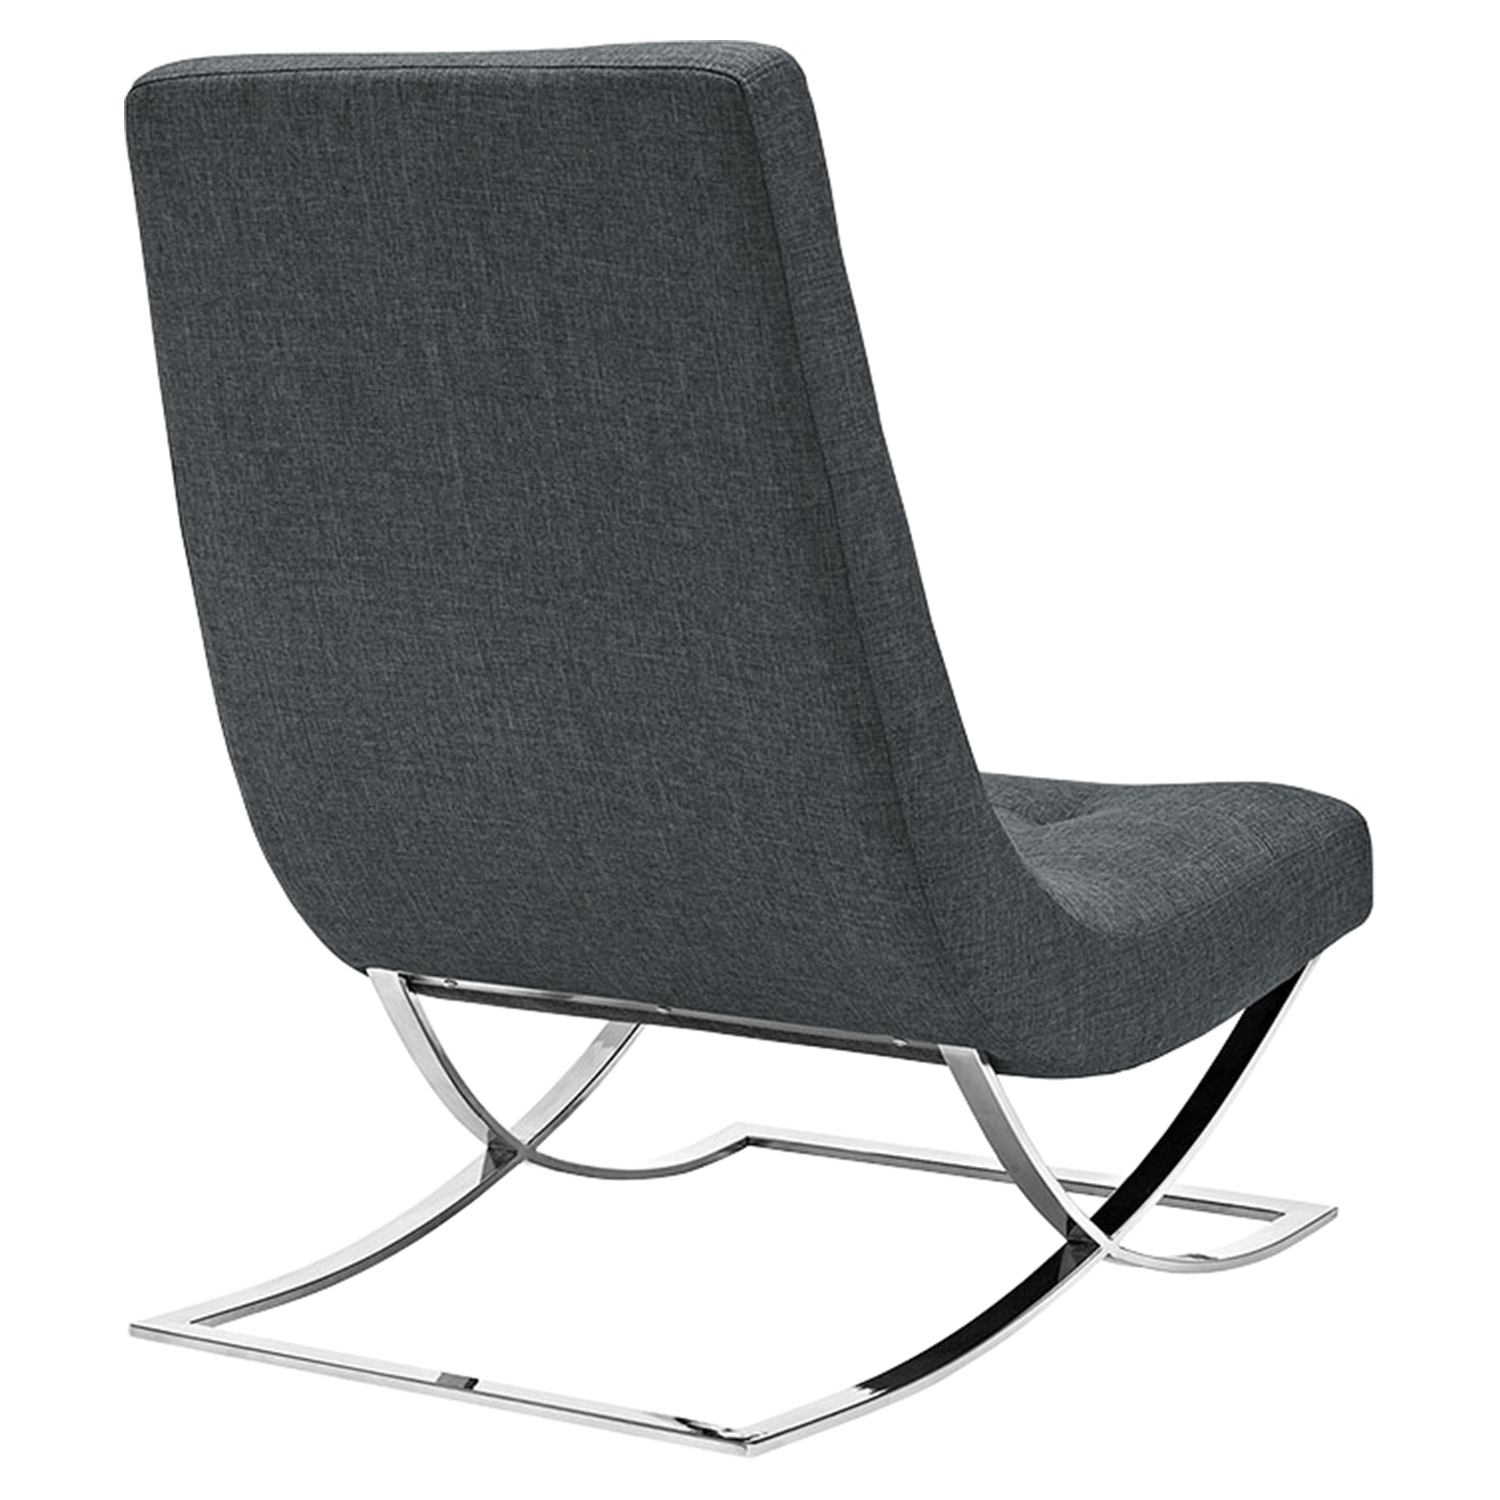 Slope Fabric Lounge Chair - Gray - EEI-2077-GRY